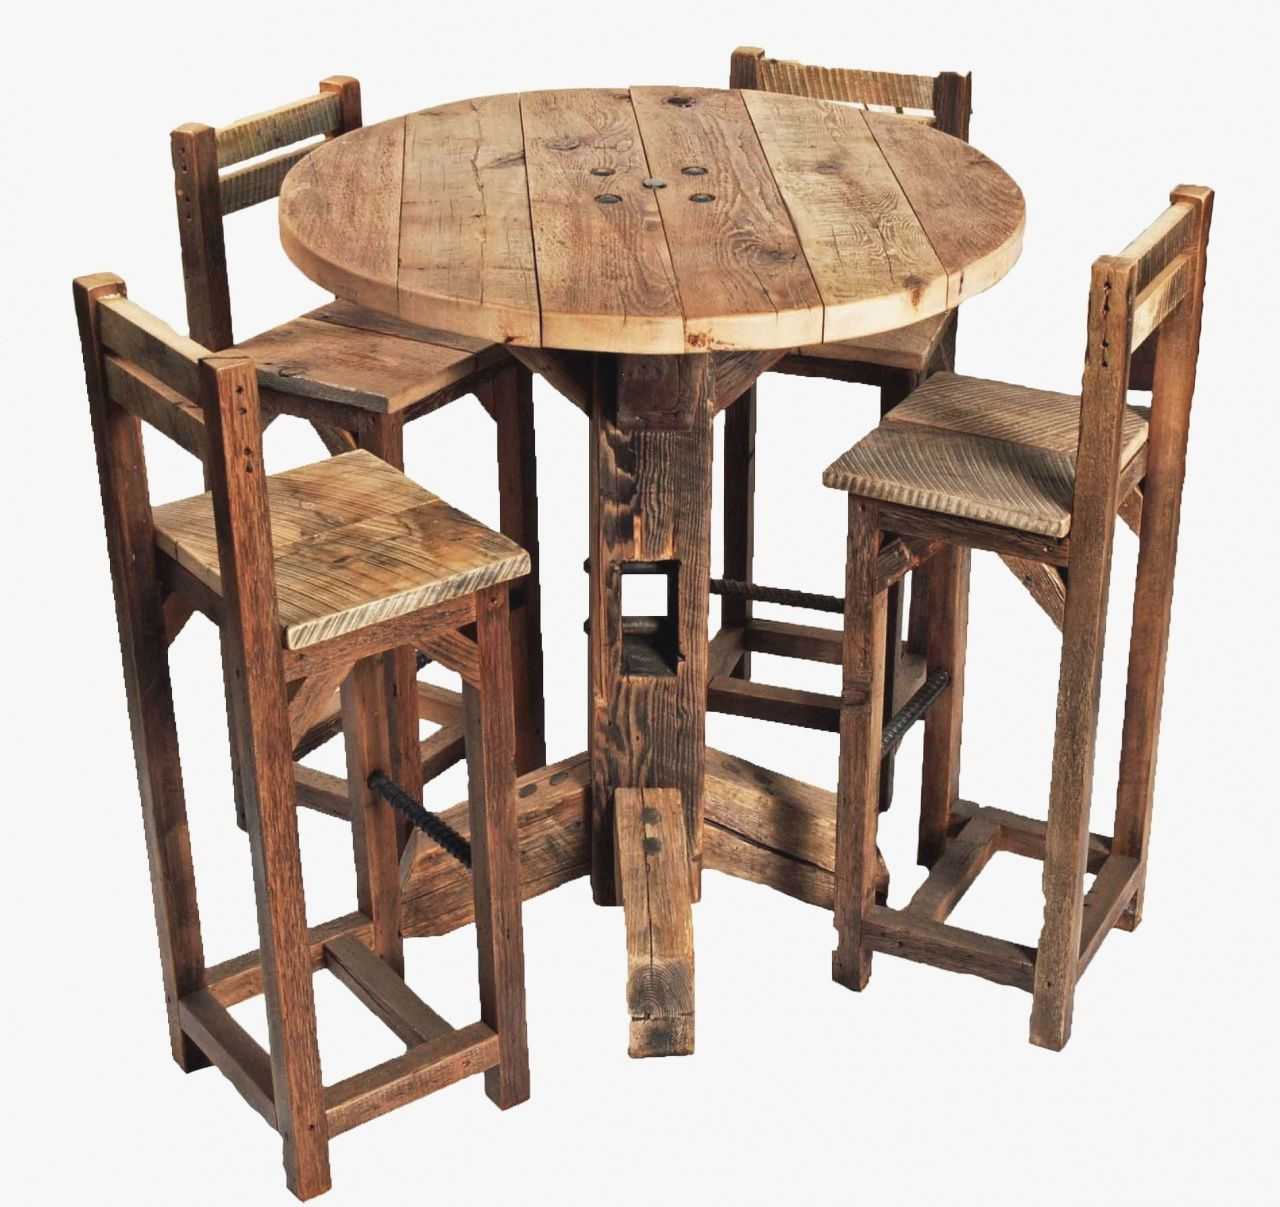 High Top Patio Table And Chairs Small Kitchen Tables Round Kitchen Table Rustic Kitchen Tables